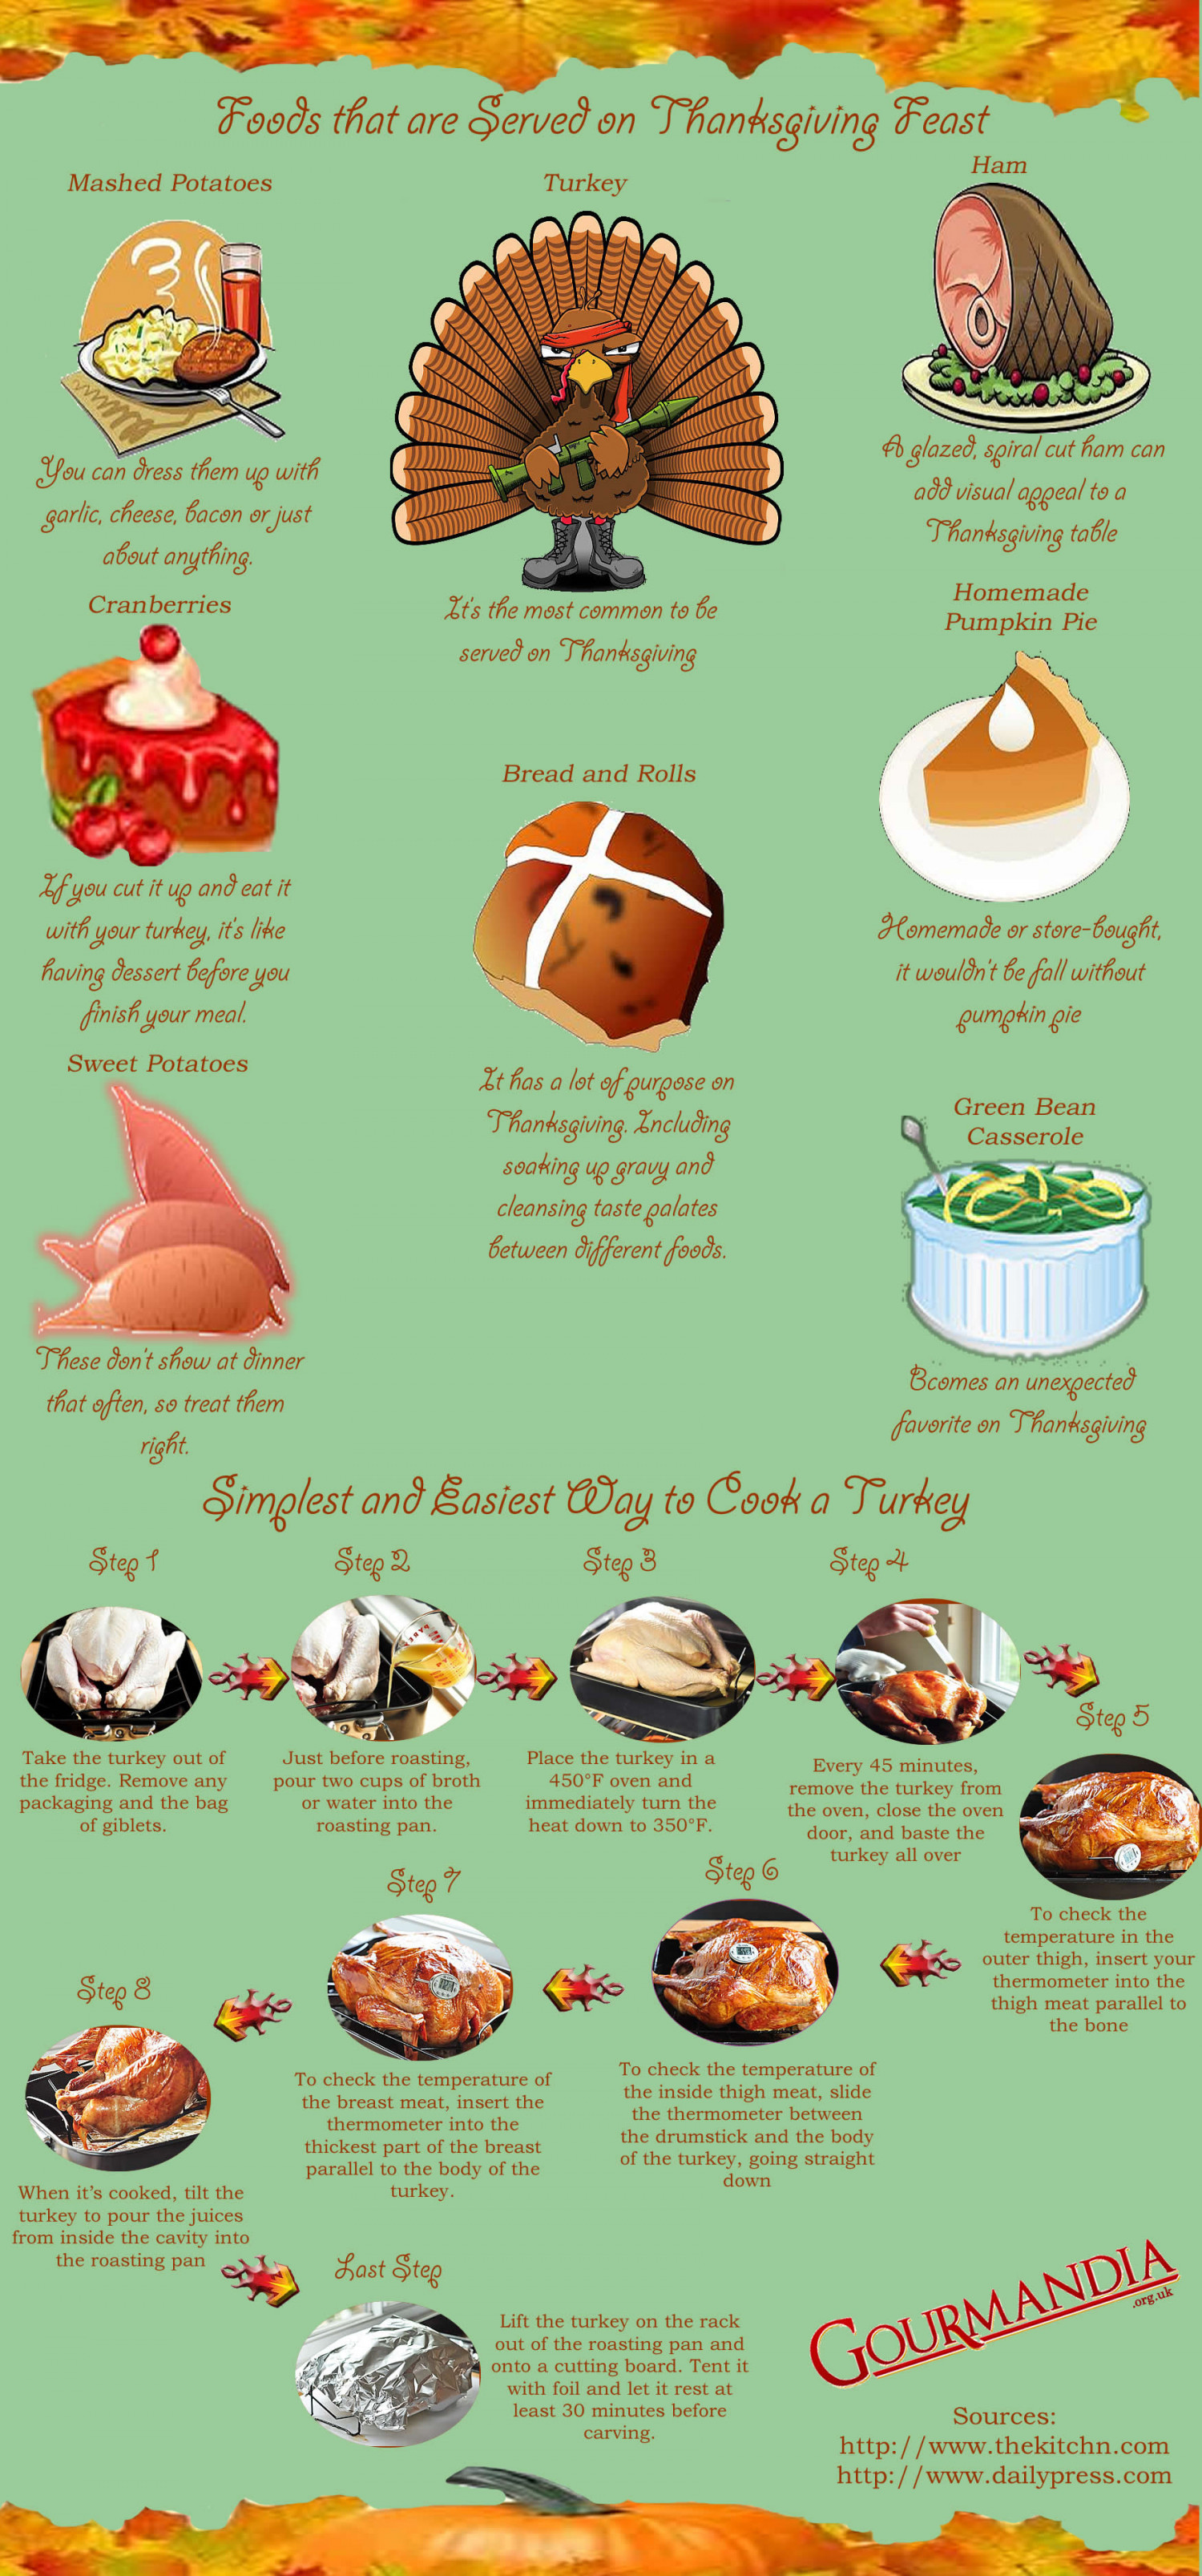 Foods that are Served on Thanksgiving Feast Infographic